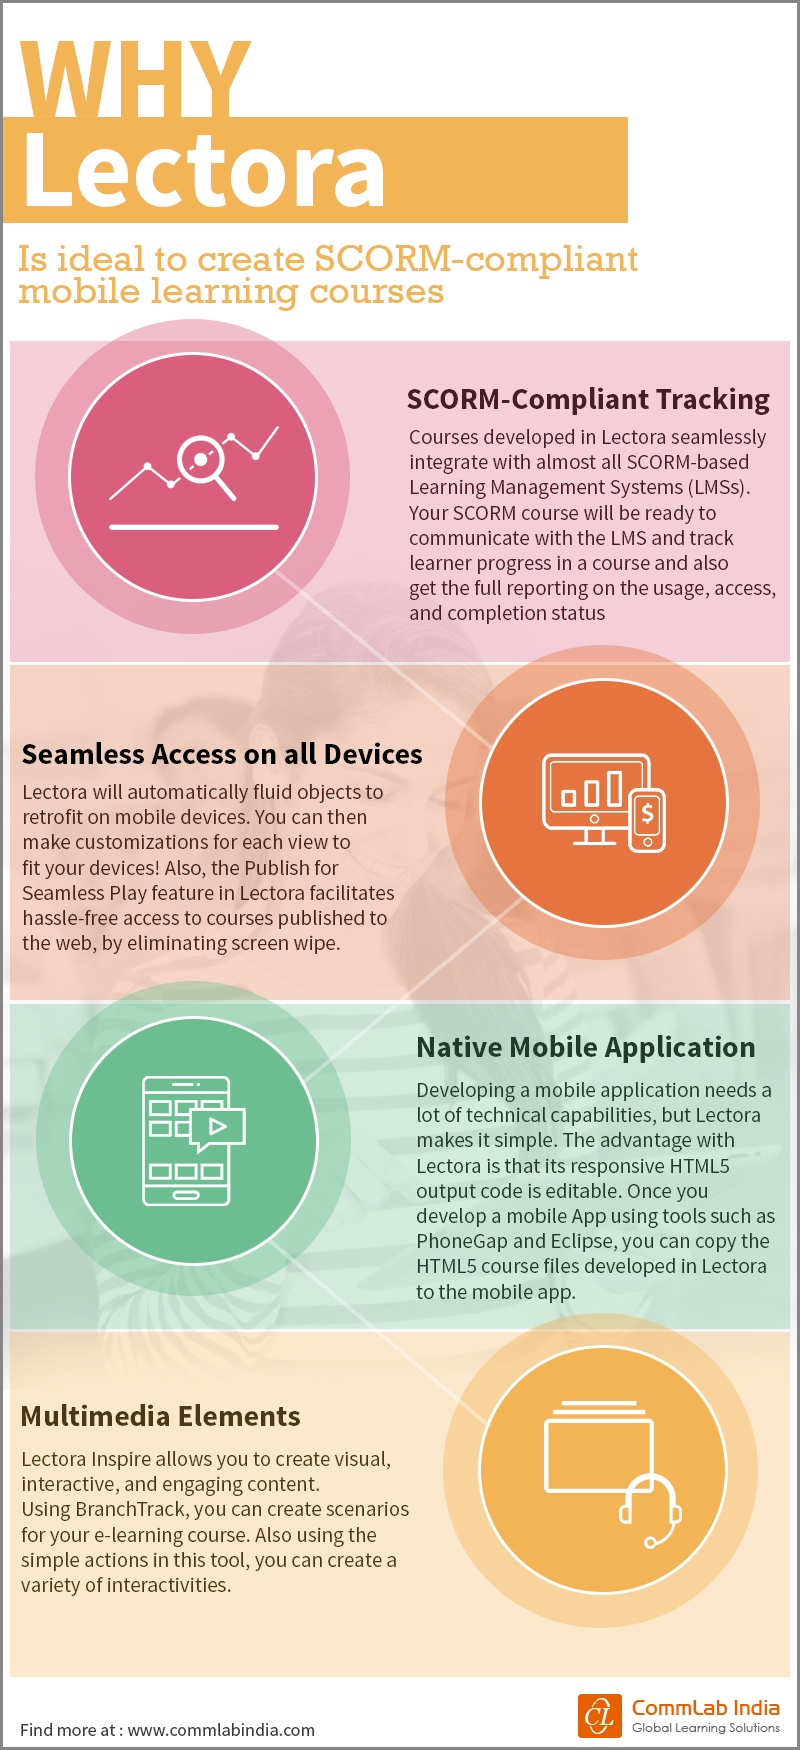 Why Lectora is Ideal to Create SCORM-Compliant Mobile